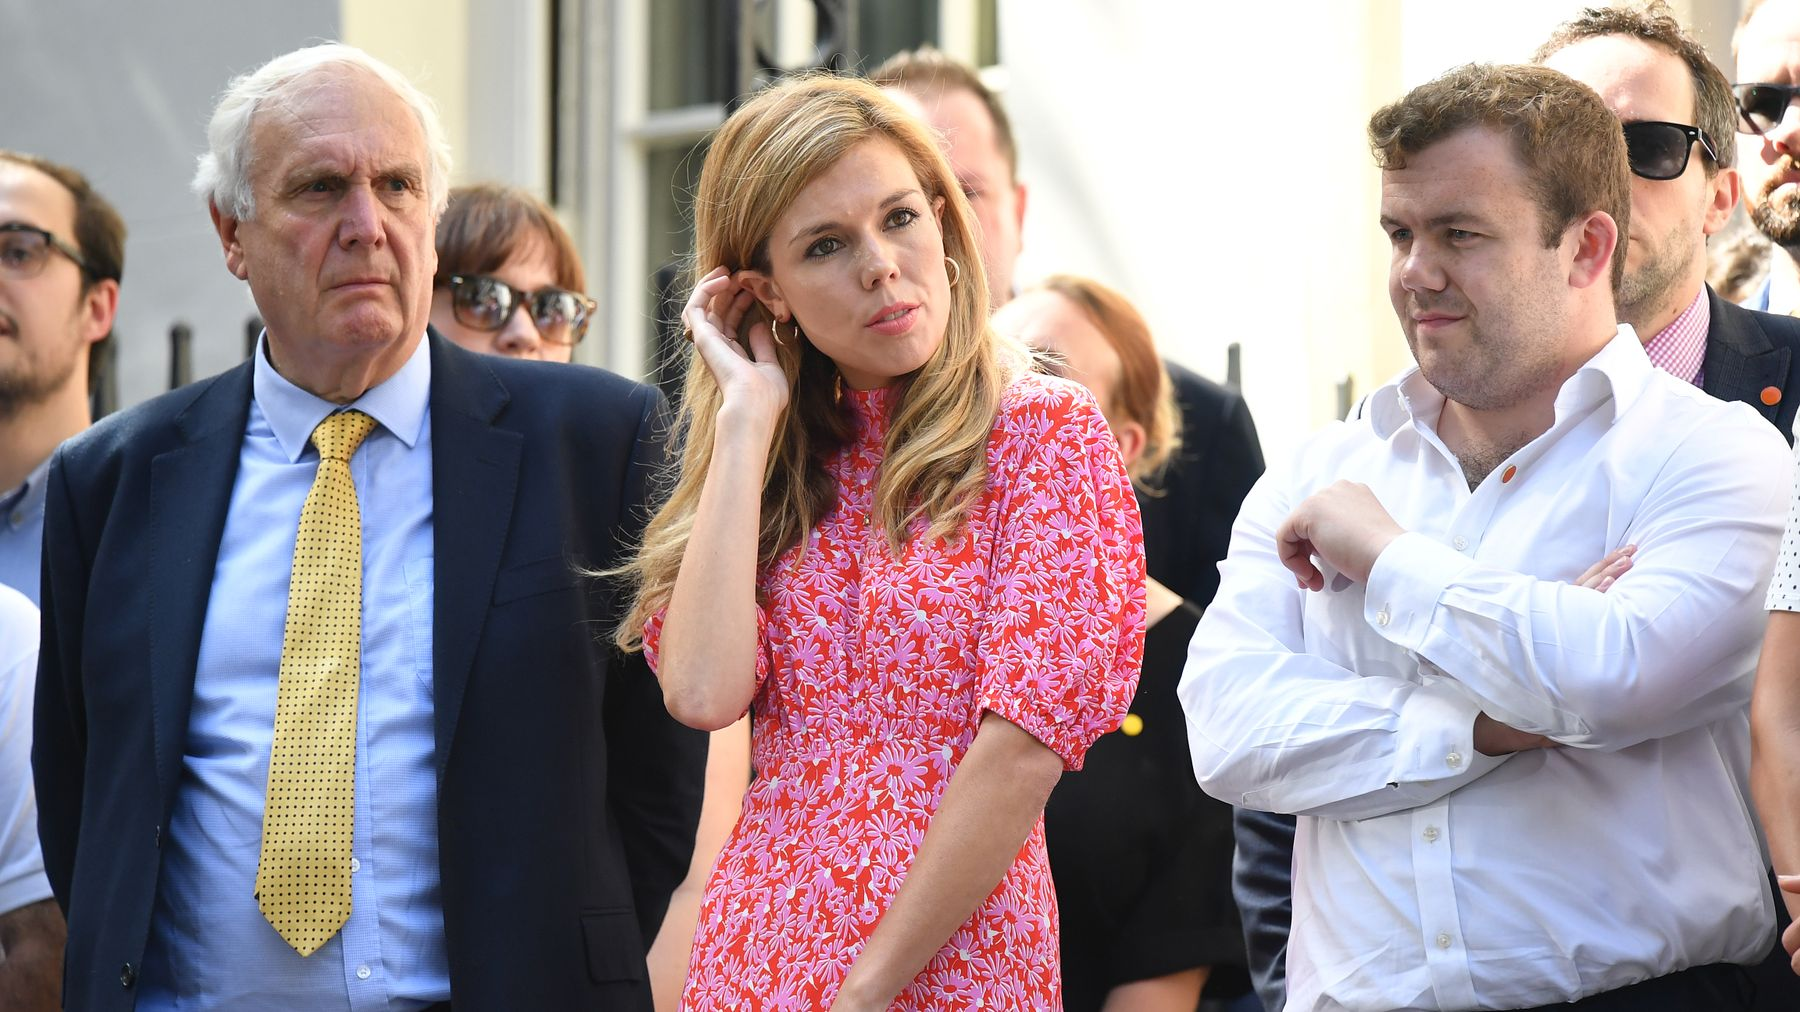 Is Carrie Symonds The New Kate Middleton When It Comes To Selling